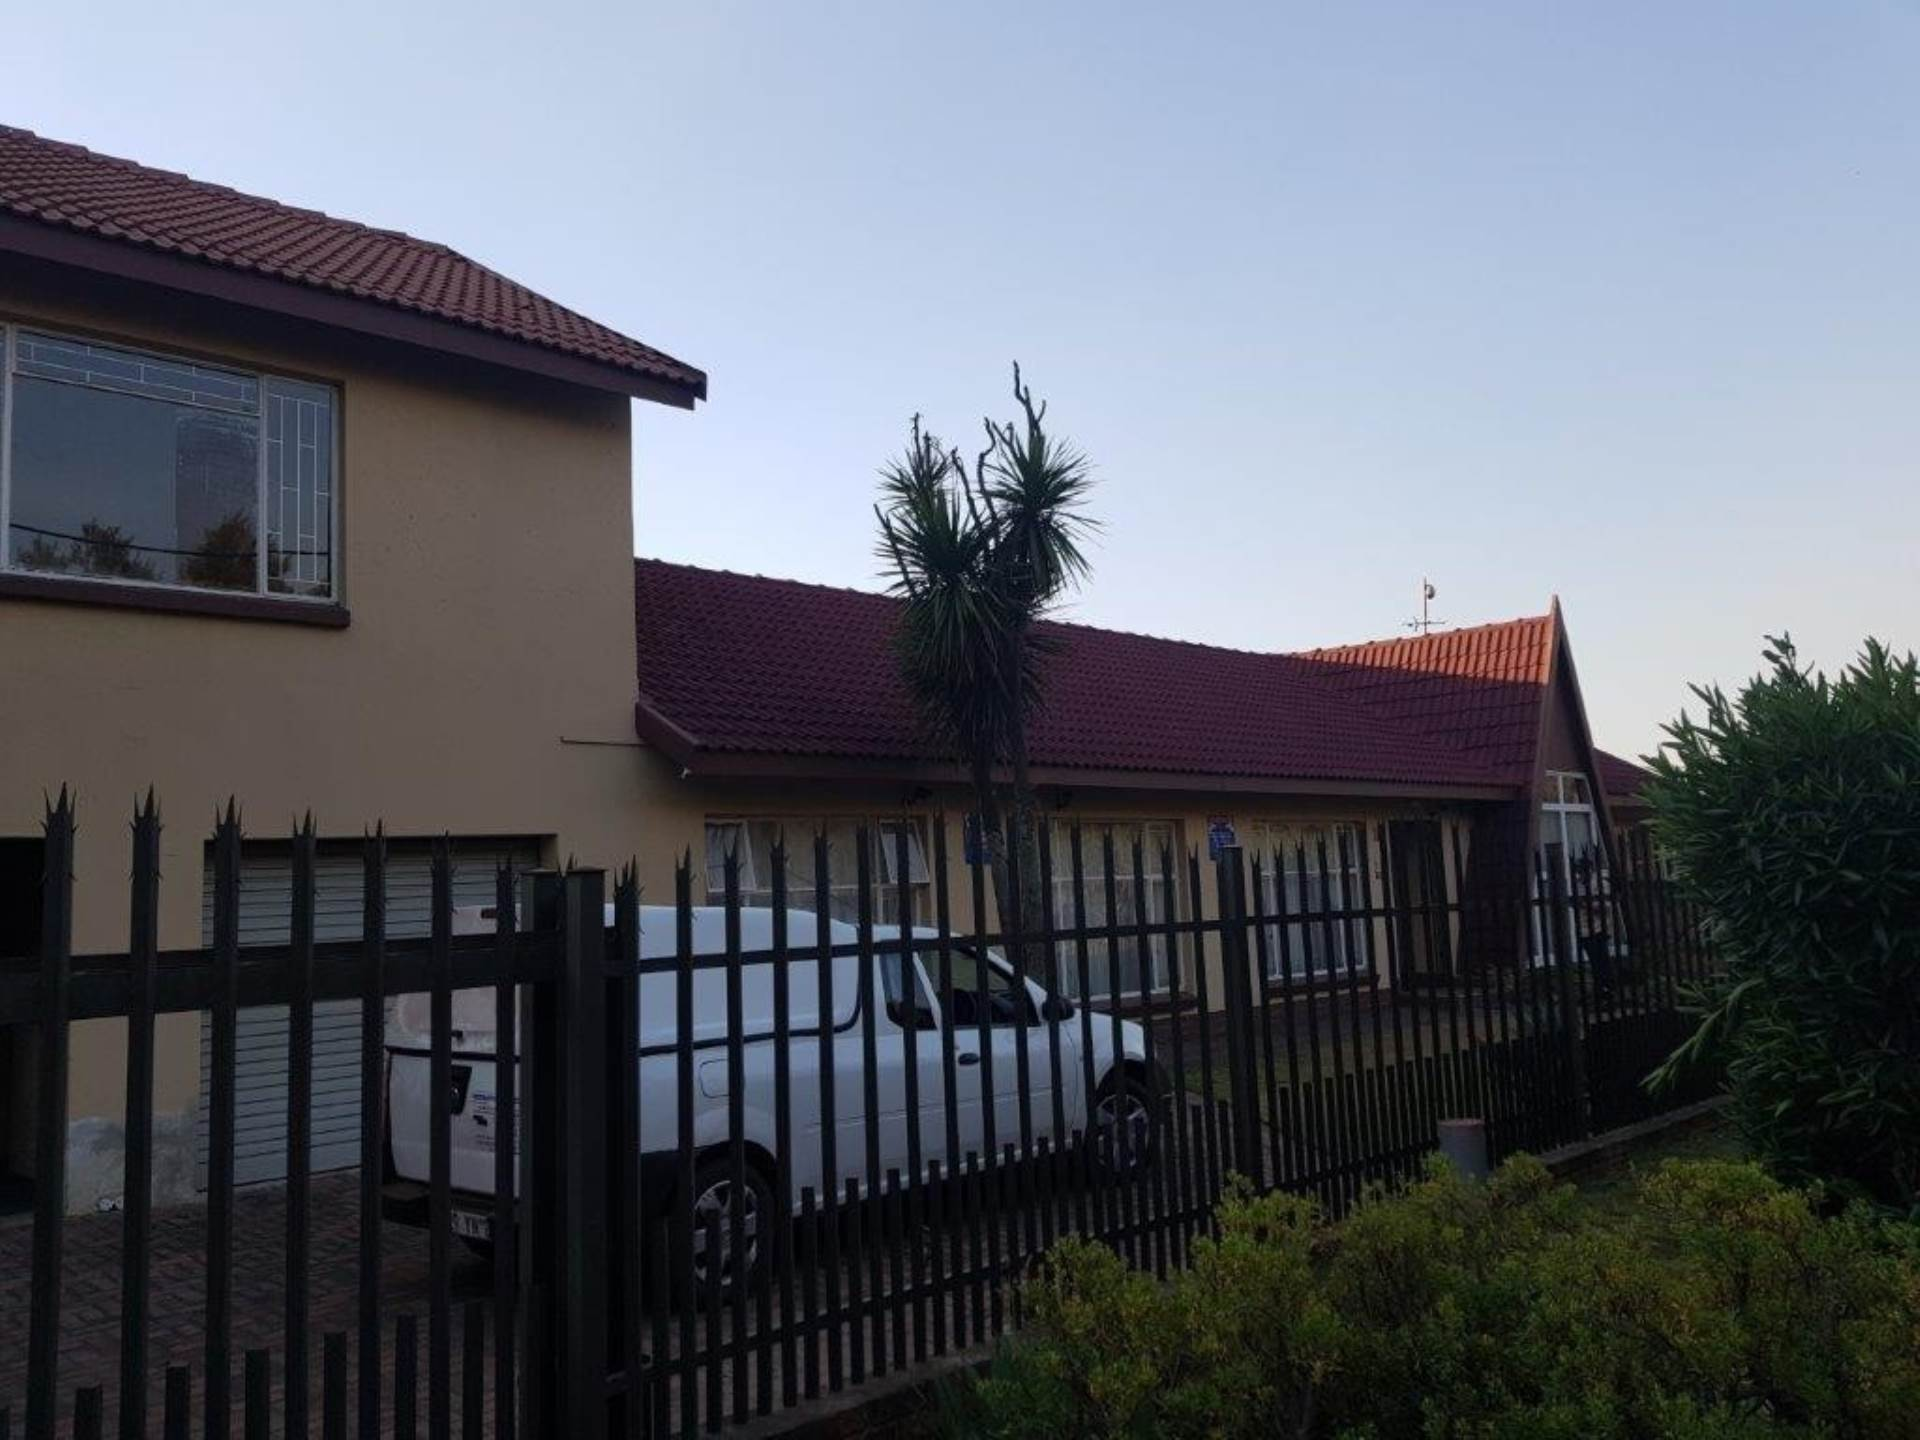 3 BedroomHouse For Sale In Brenthurst